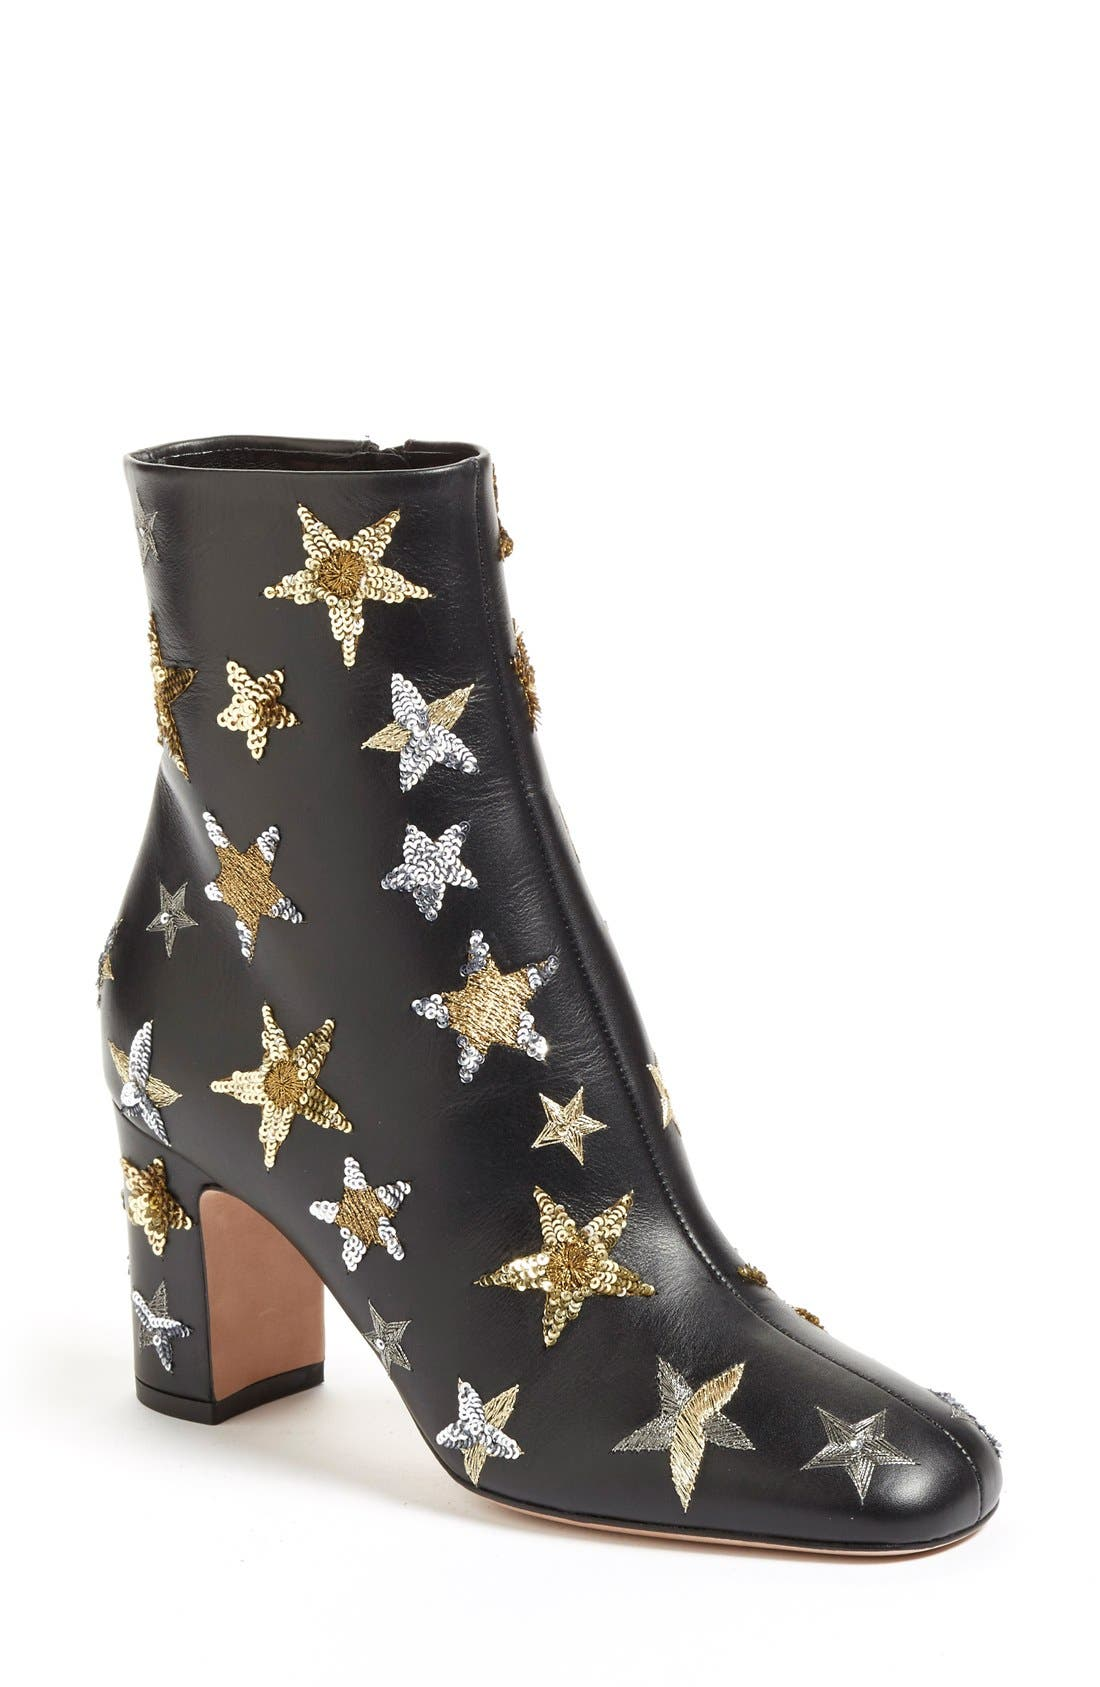 VALENTINO,                             'Star Studded' Bootie,                             Main thumbnail 1, color,                             002